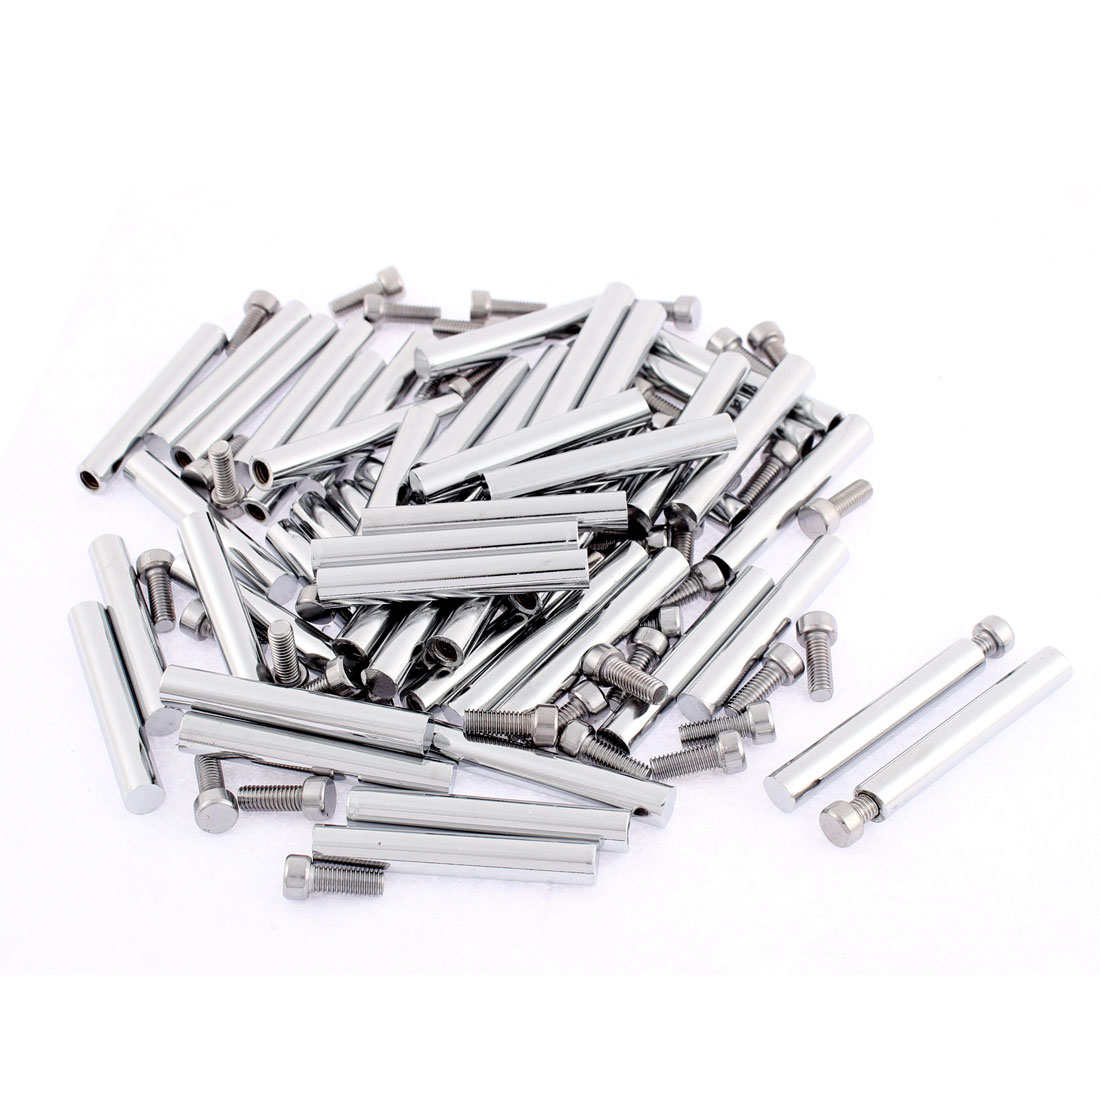 Advertisement Glass Wall Mounted Screw Nails Clamp Holder 8 x 55mm 50pcs